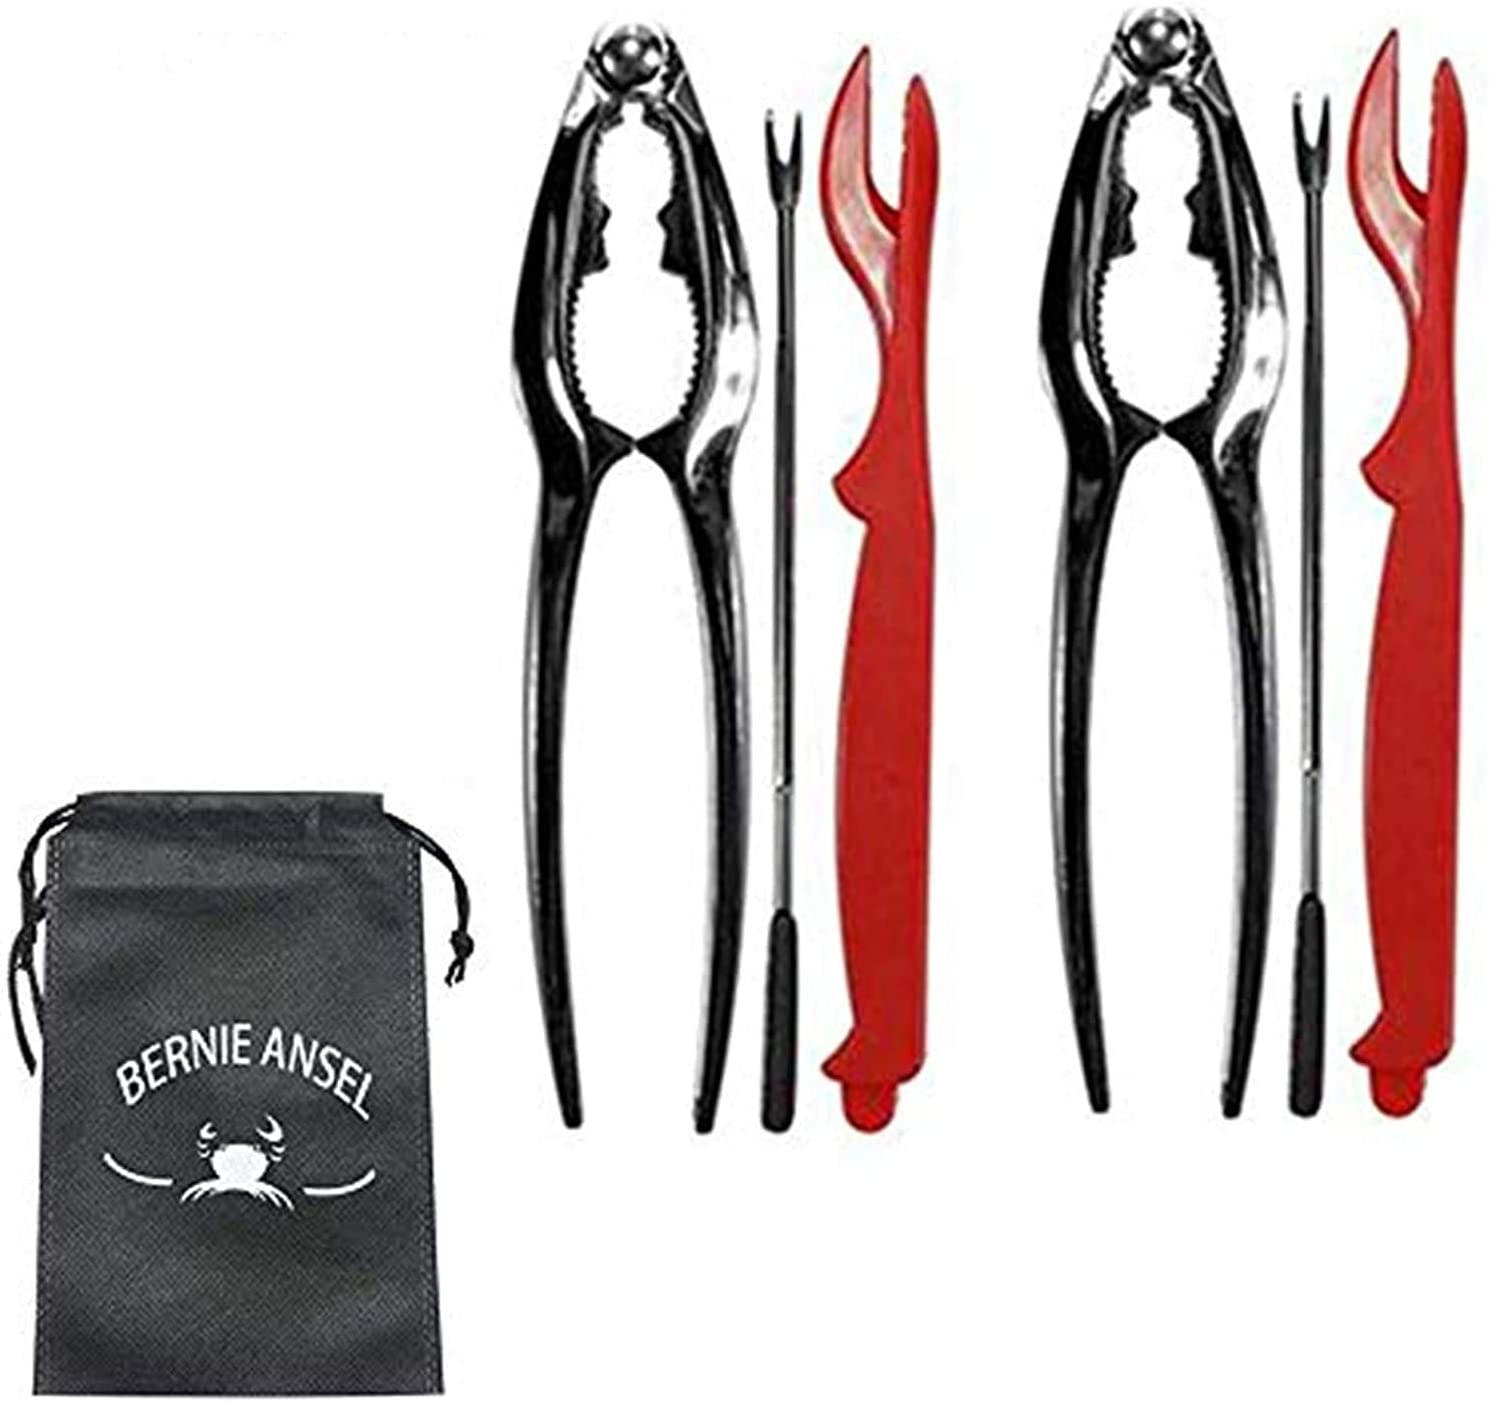 Crab Claw Crackers and Tools Set, Seafood Tools Set Crab Leg Crackers and Picks Tools Including 2 Lobster Shell Crackers and 6 Seafood Forks Kit